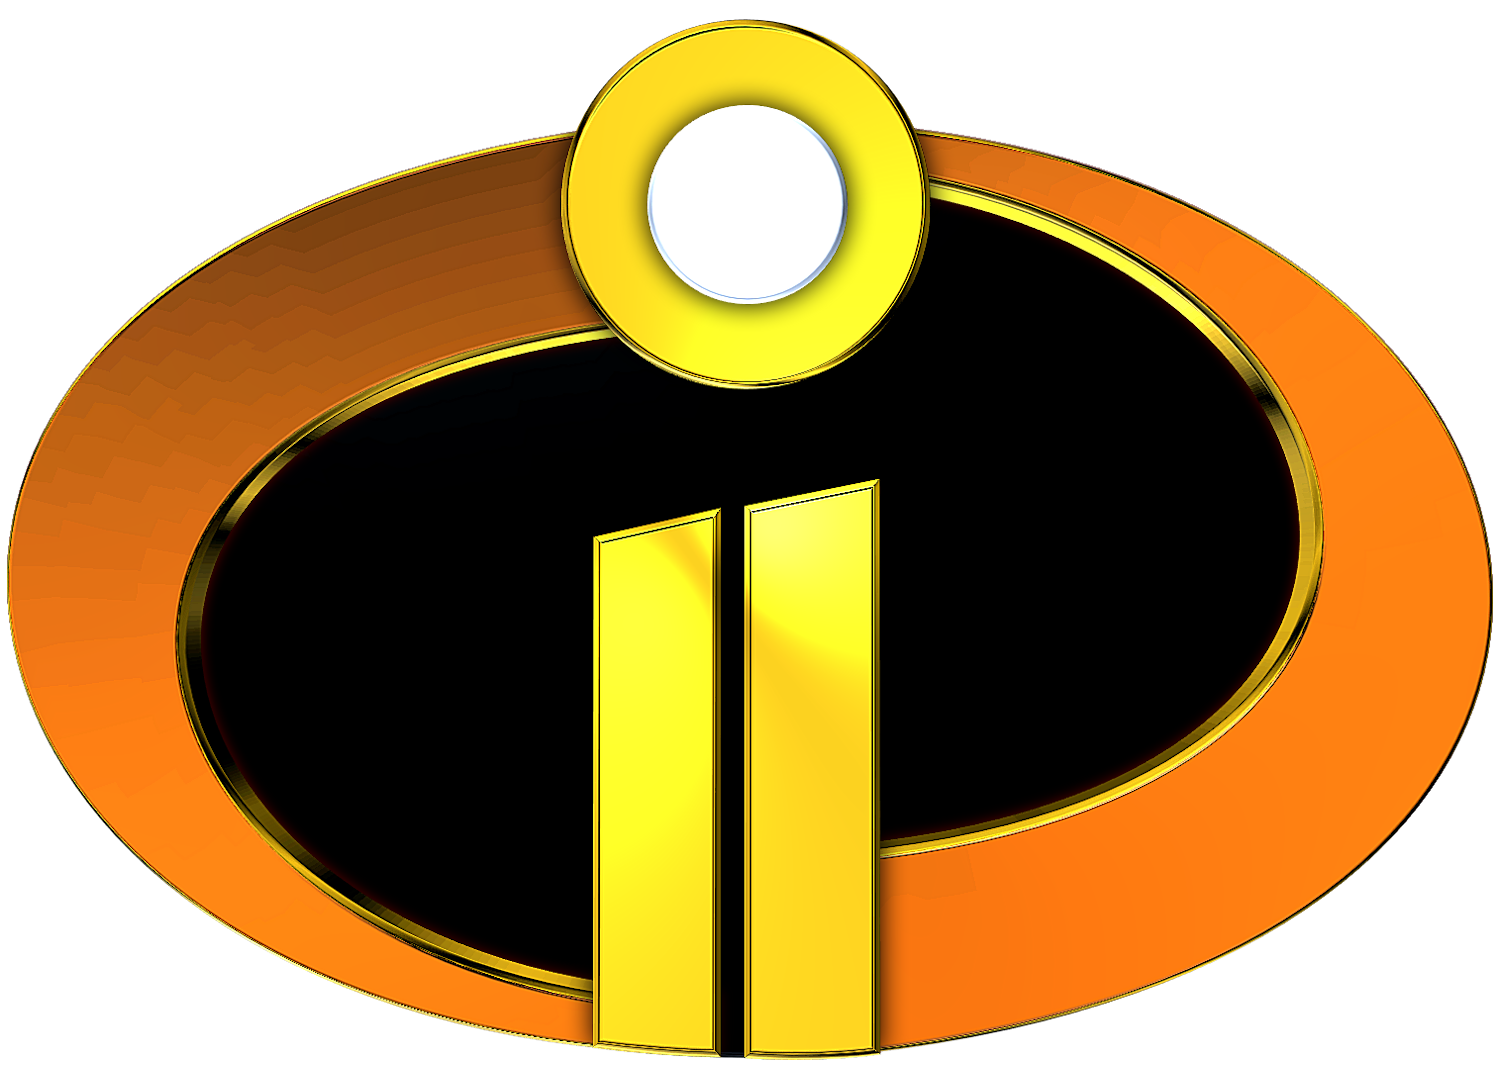 The Incredibles 2 Logo in 3D 00 by KingTracy on DeviantArt